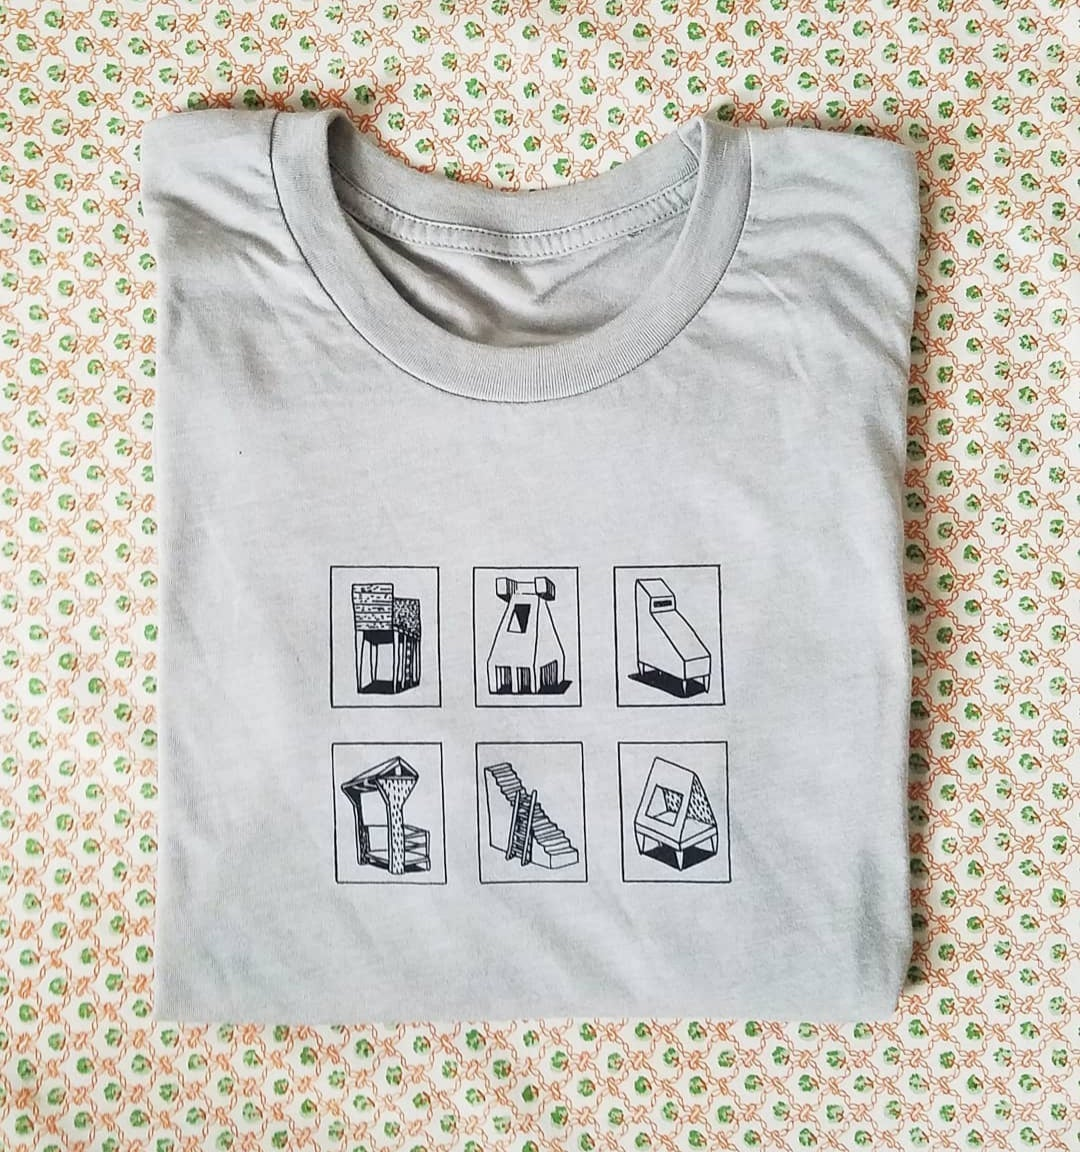 structures t-shirt